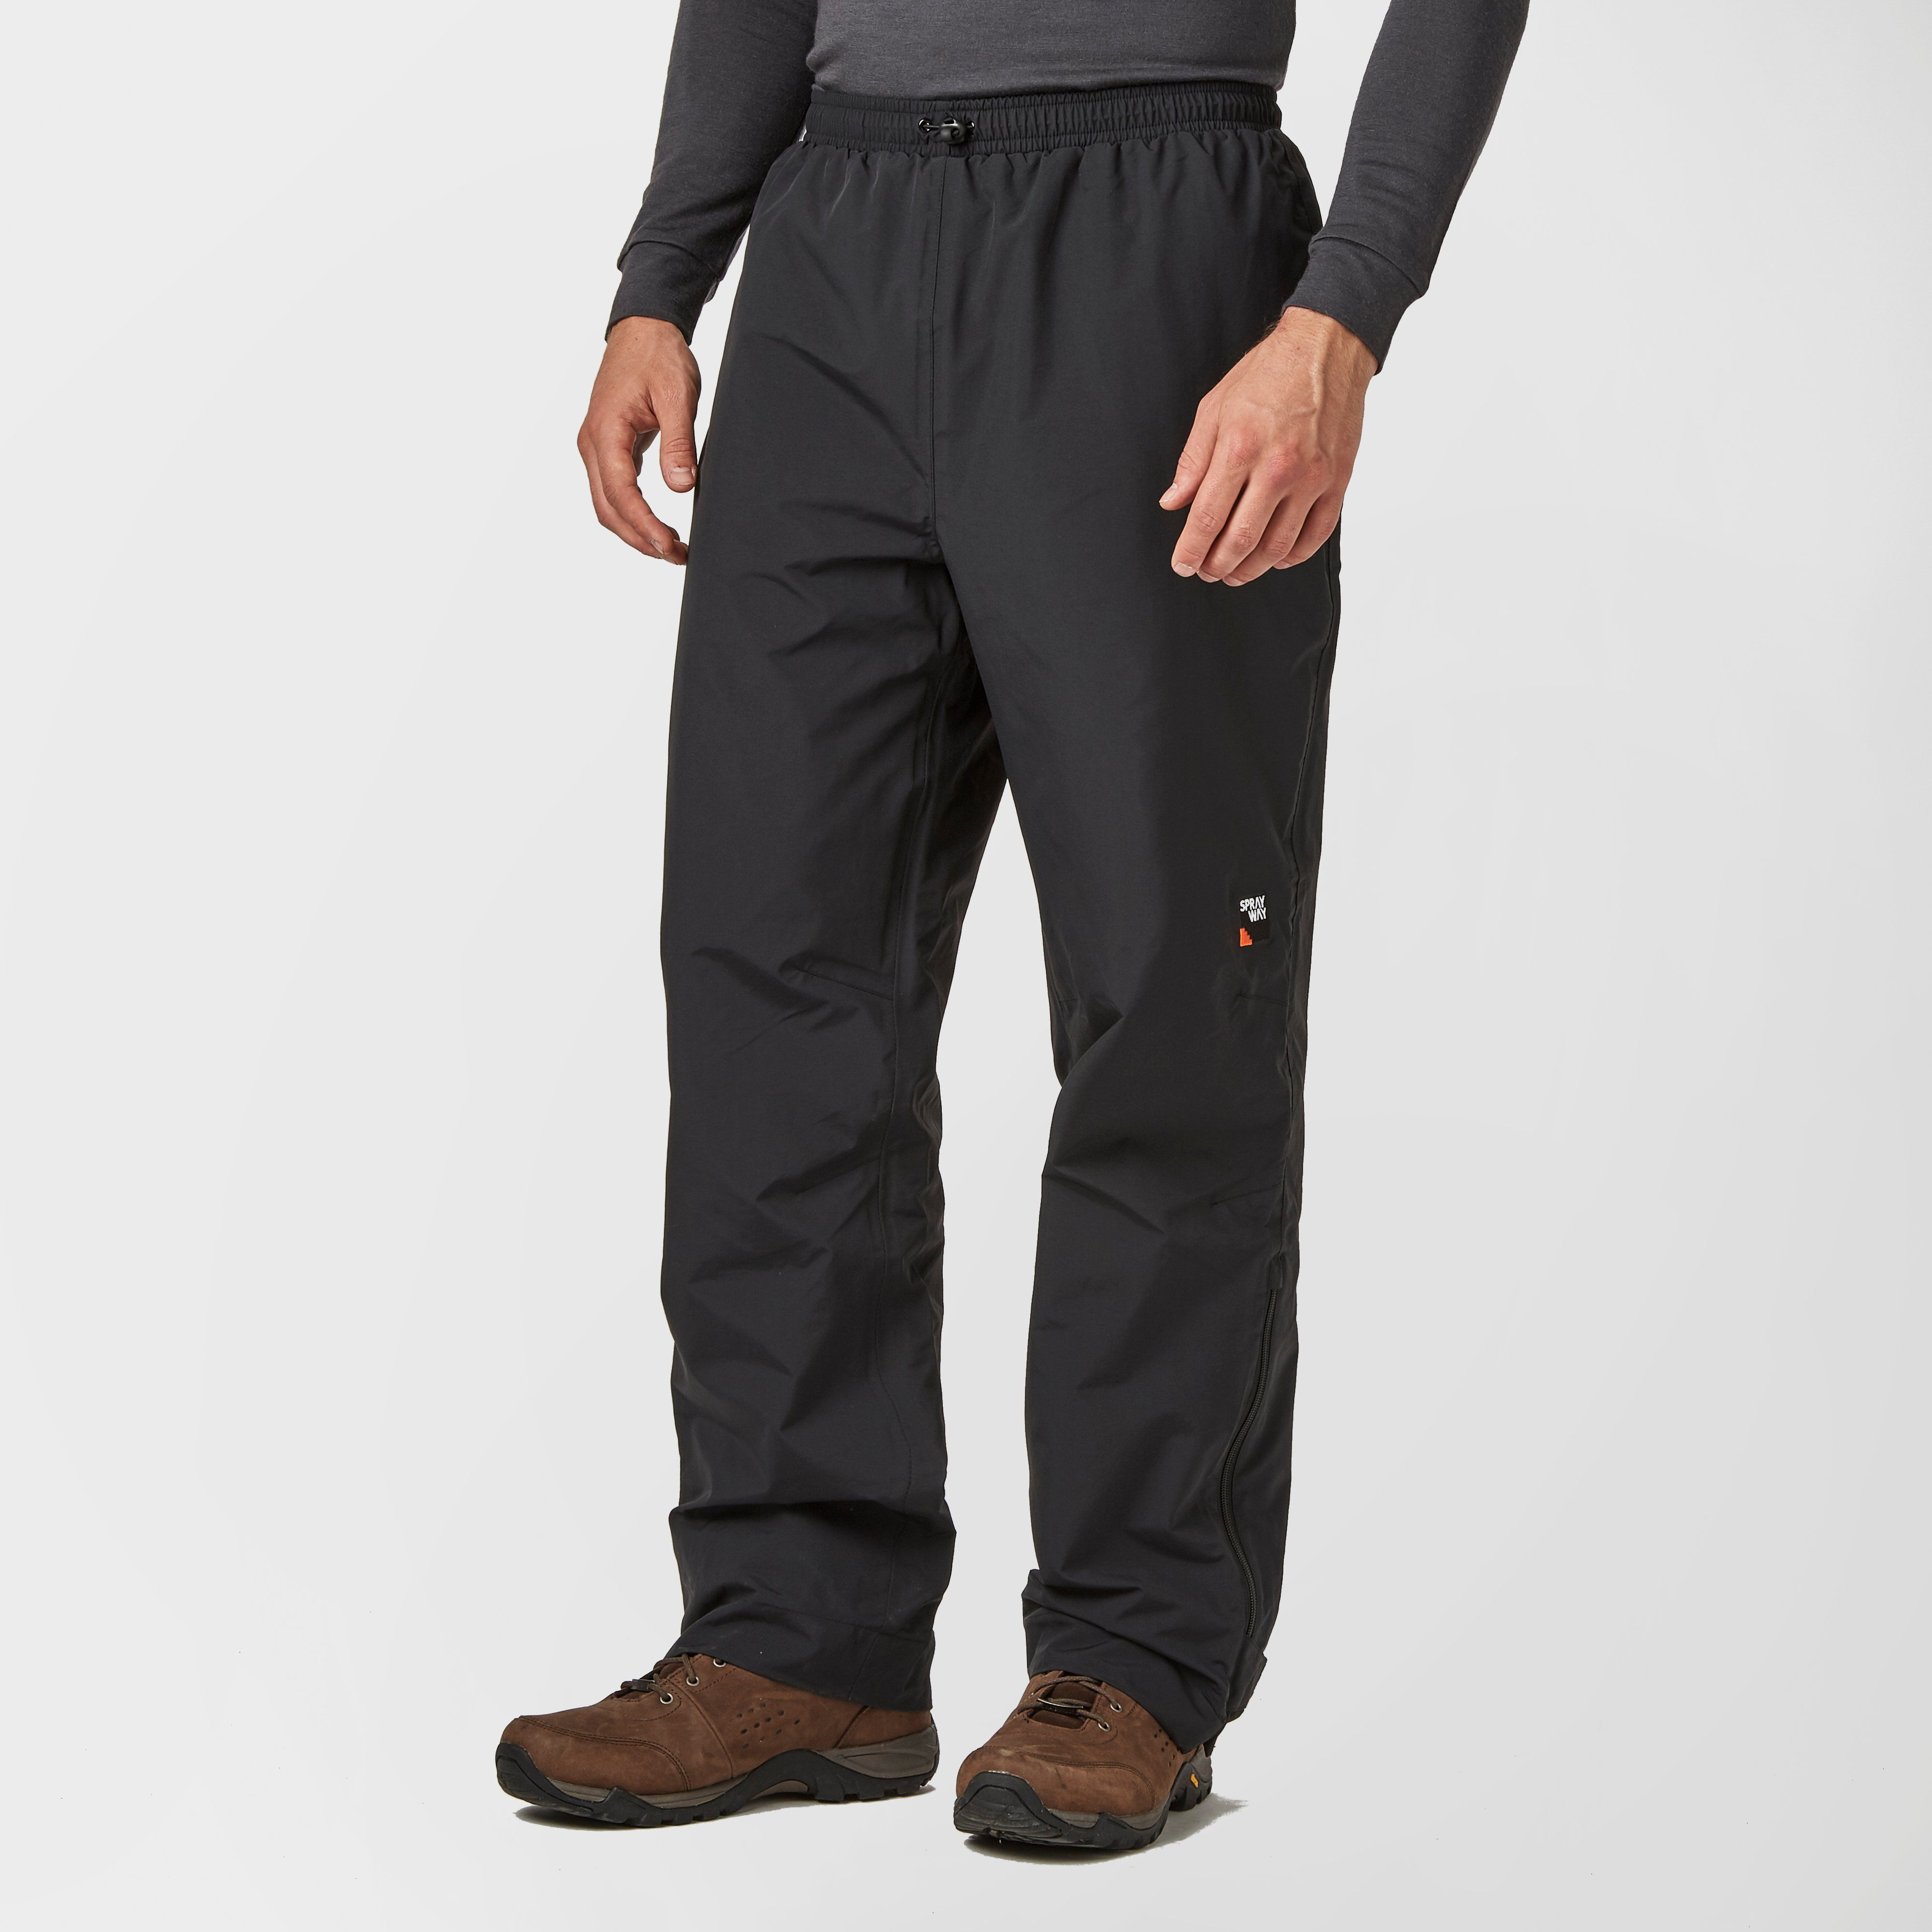 SPRAYWAY Men's Cairn 2 Overtrousers